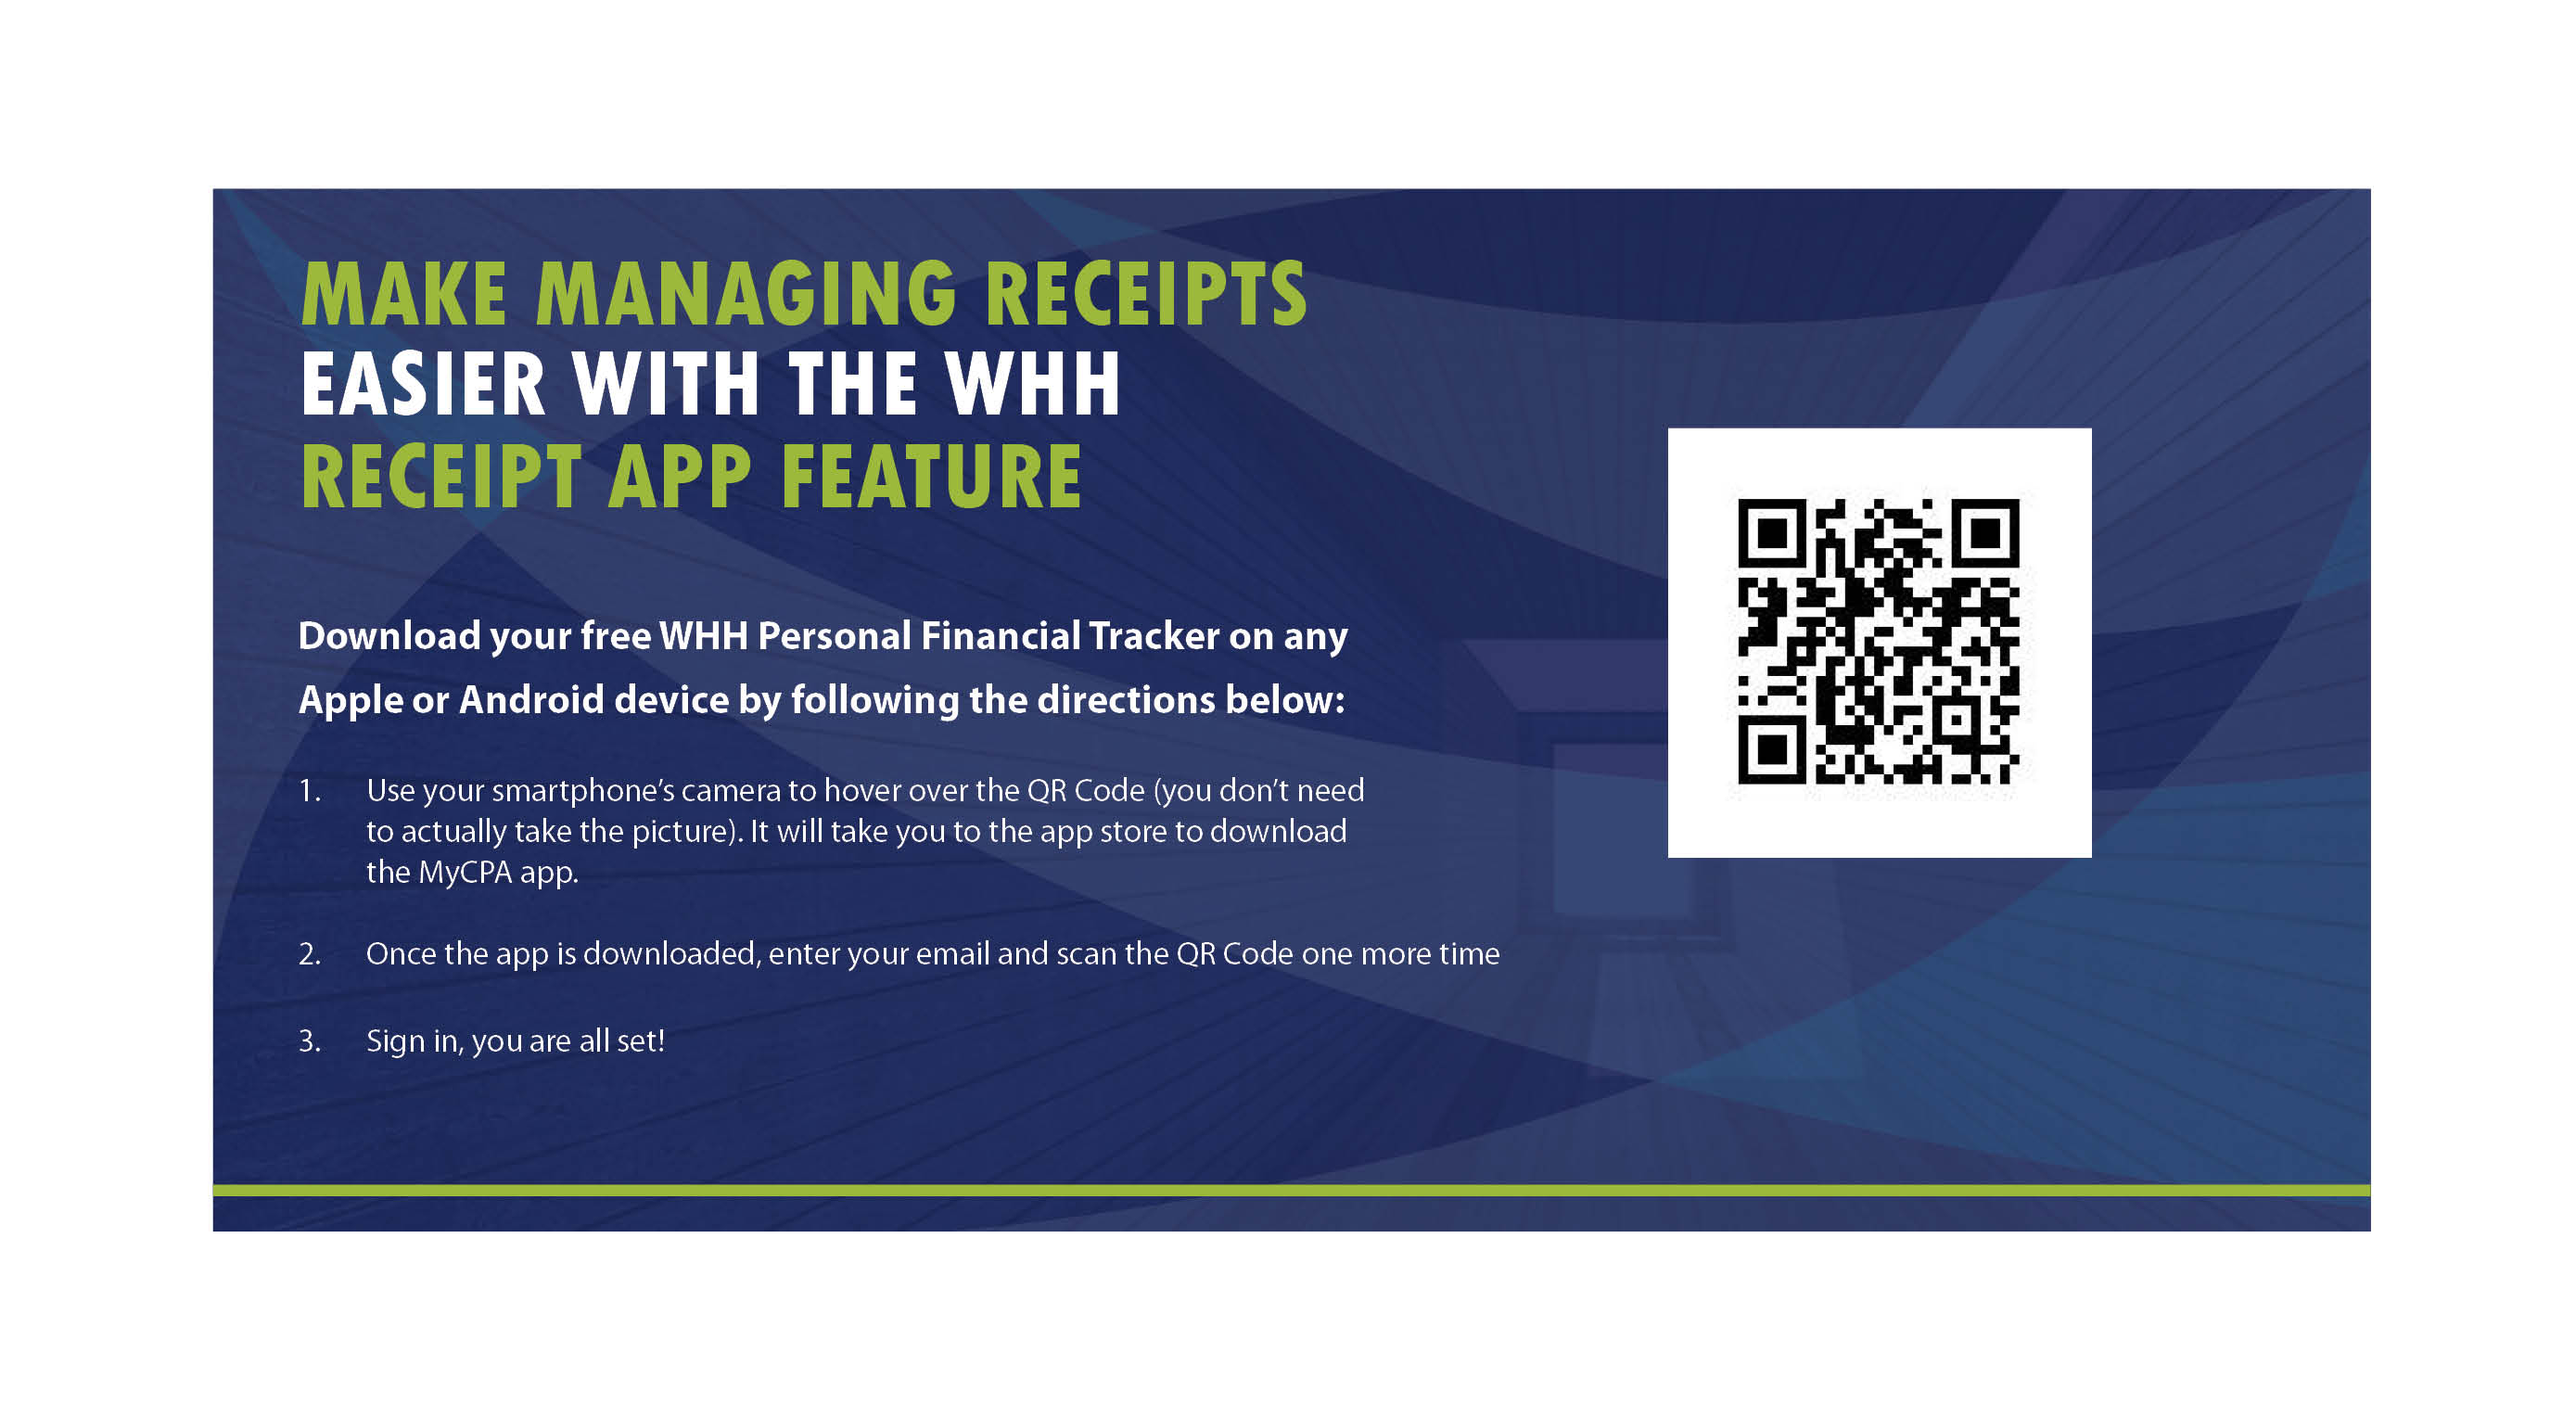 make managing receipts easier with the whh receipt app feature